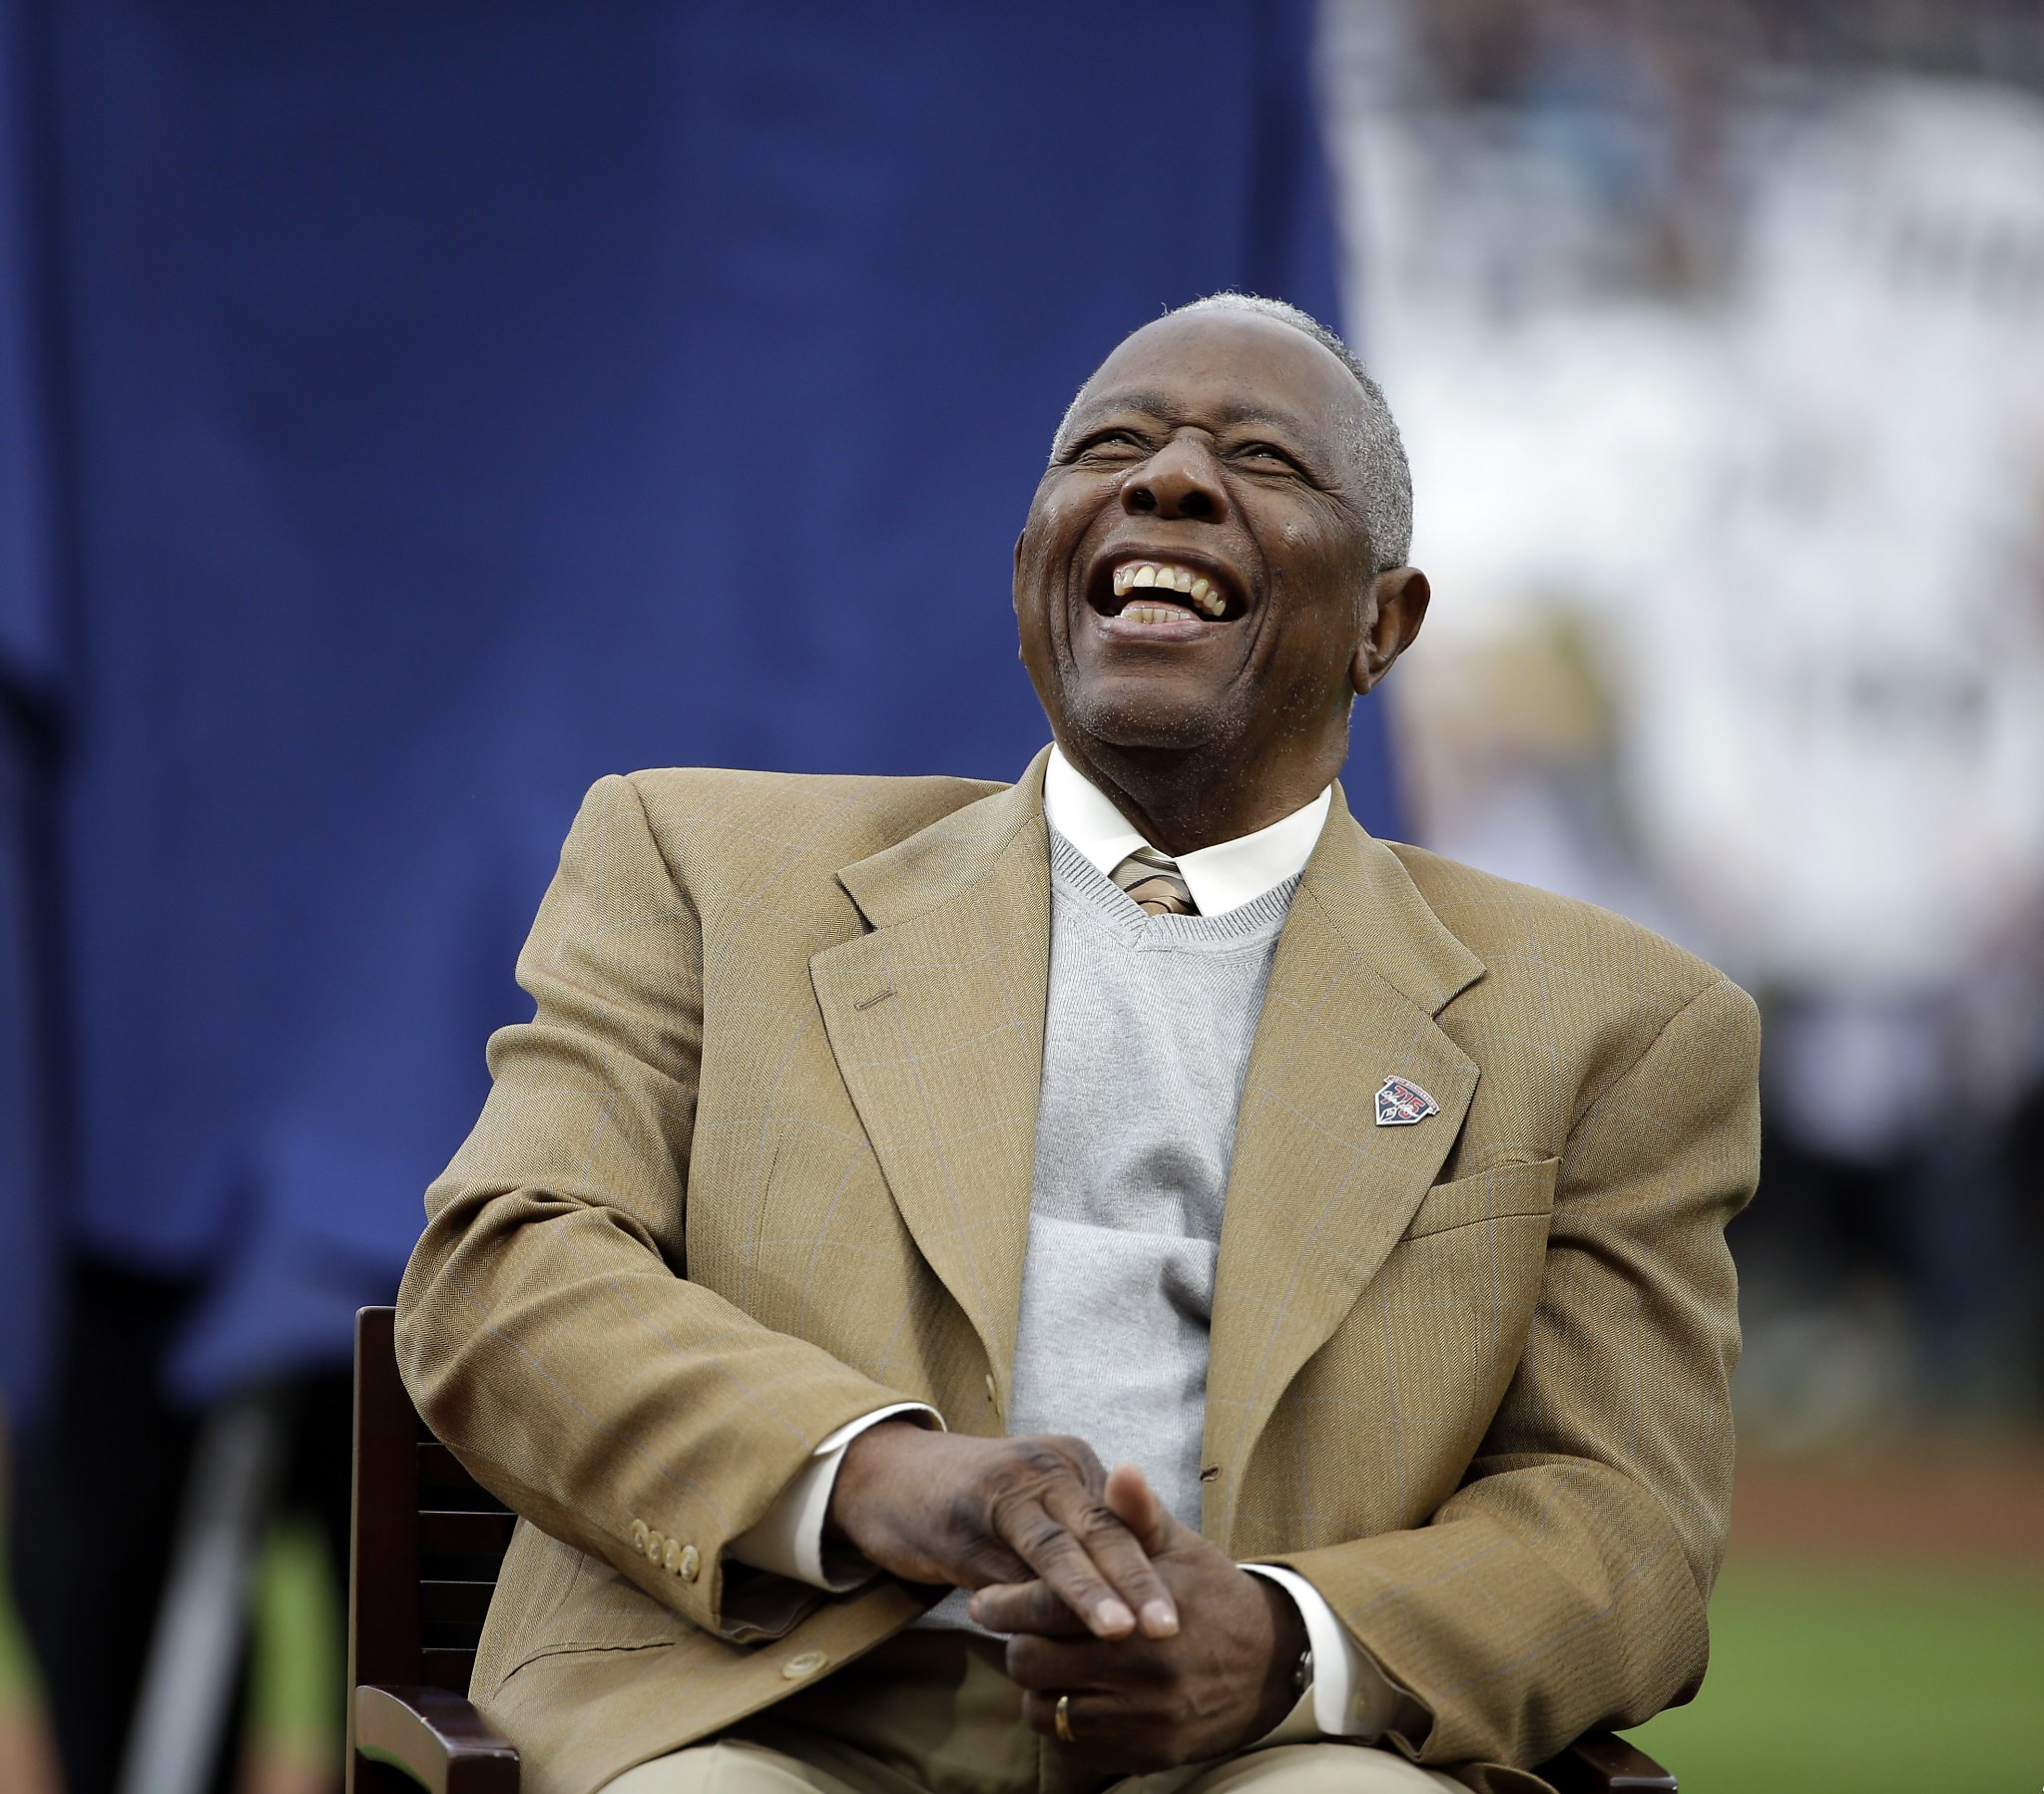 Willie Mays, other legends react to Hank Aaron's death: 'best person I ever knew'